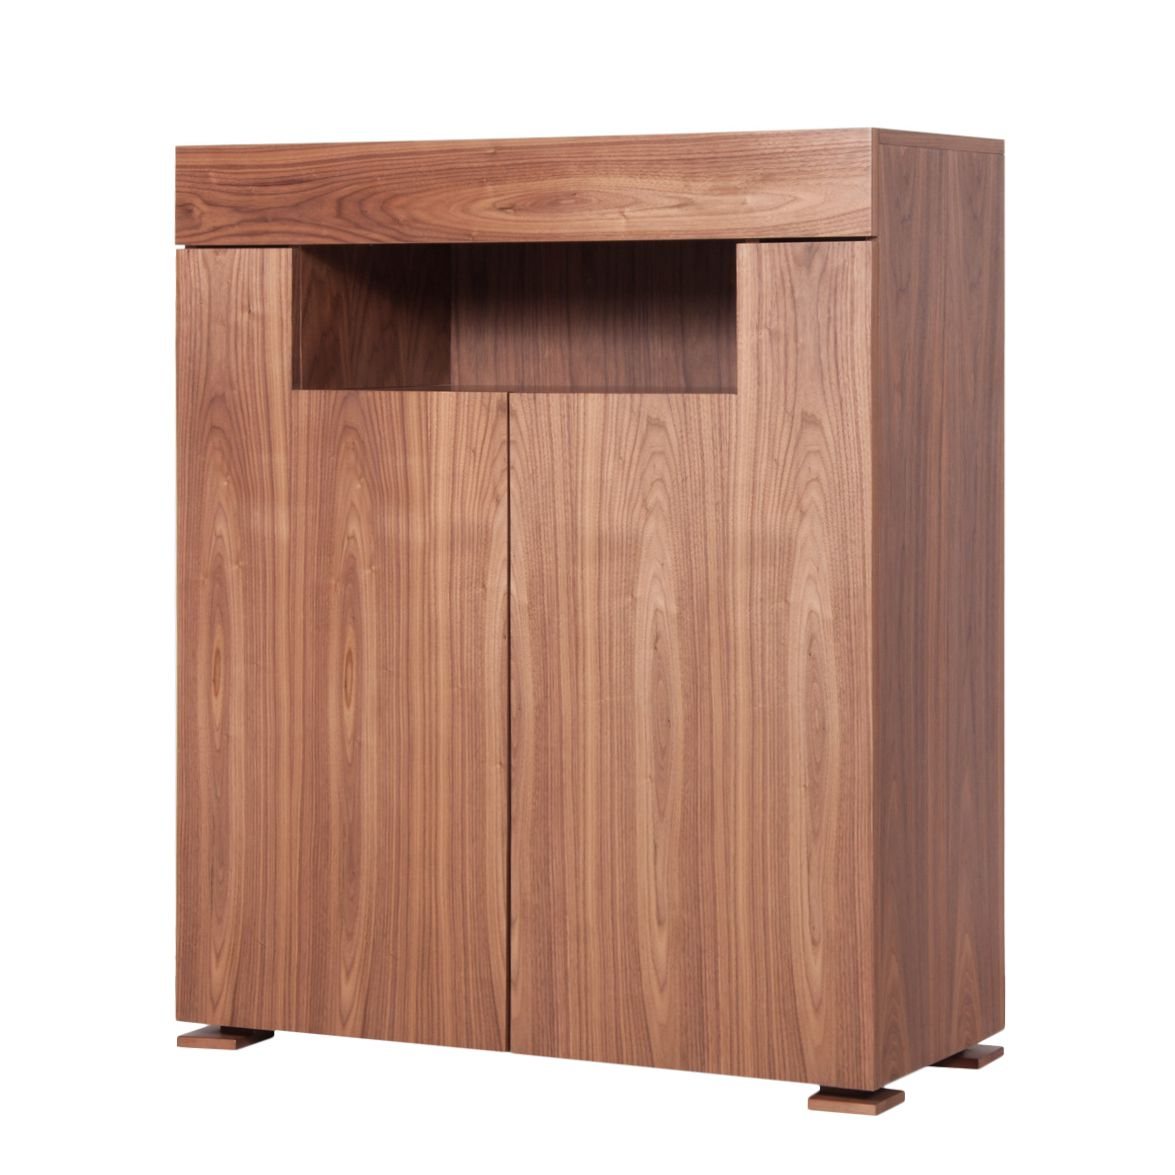 Highboard Palermo - Walnuss